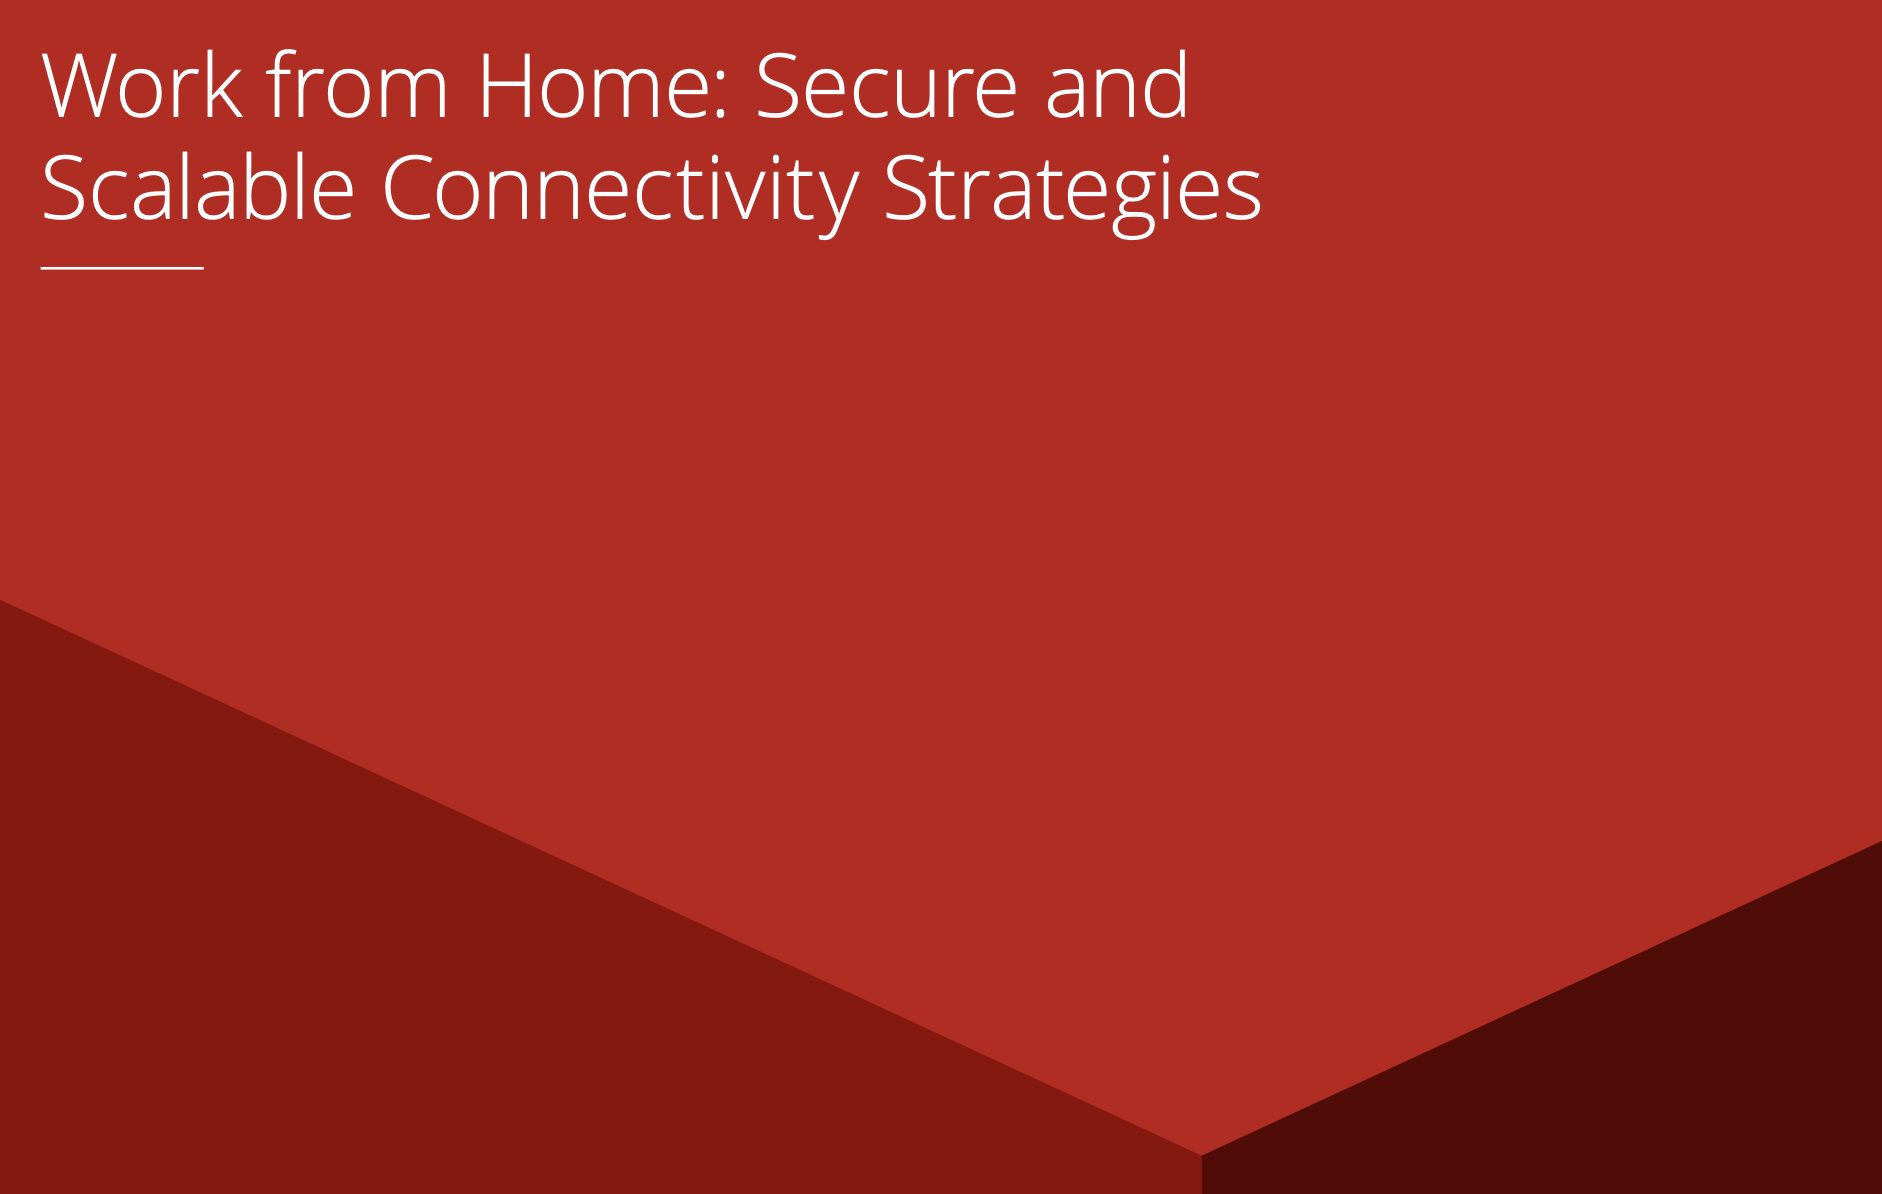 work from home secure ad scalable connectivity strategies